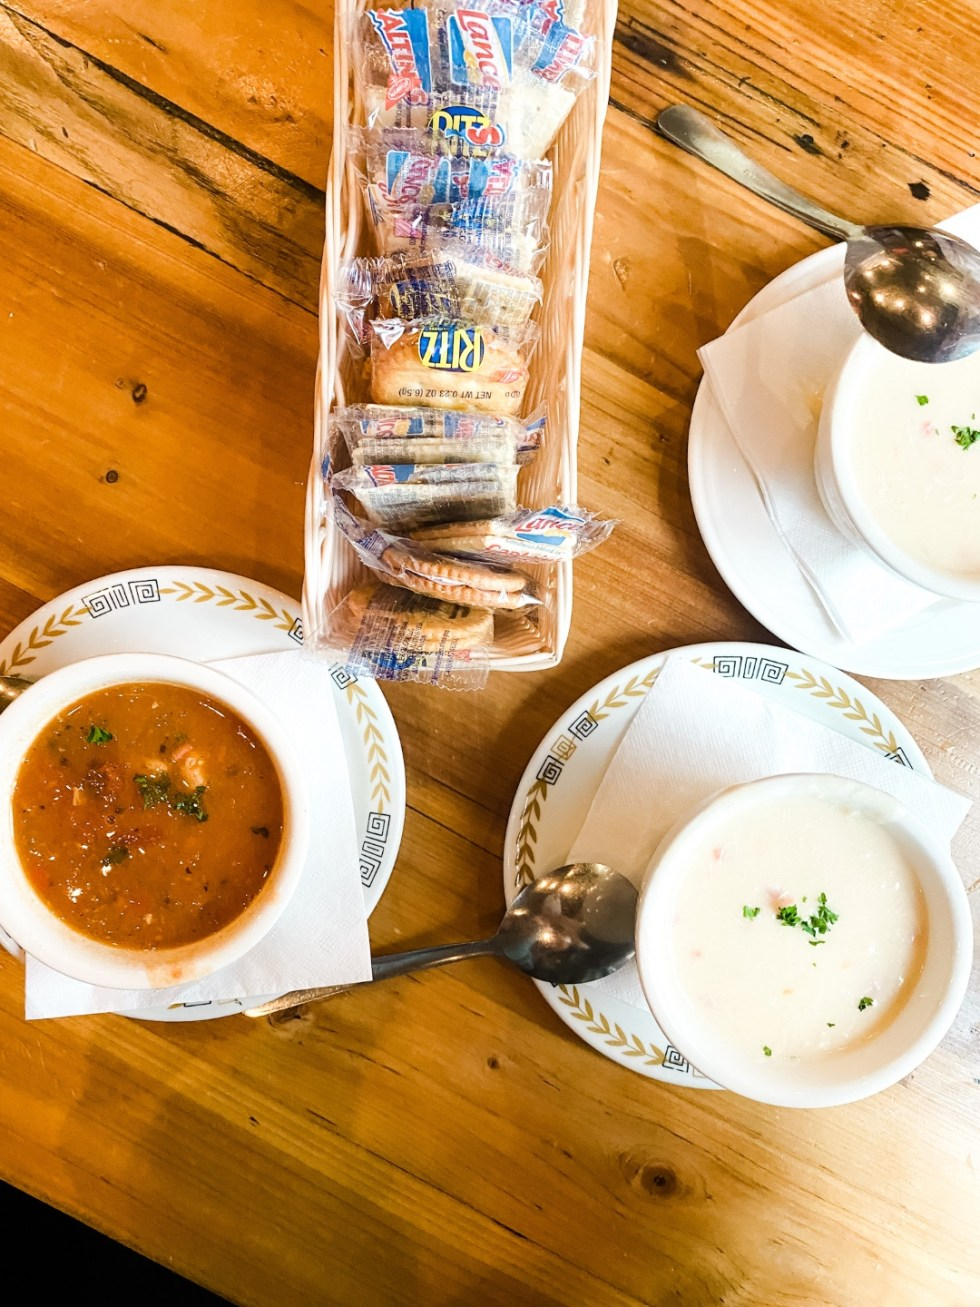 Western NC Wineries: 6 Wineries to Visit During your Next Girls' Weekend - I'm Fixin' To - @mbg0112 |Western NC Wineries by popular NC blog, I'm Fixin' To: image of soup at Southern on Main.